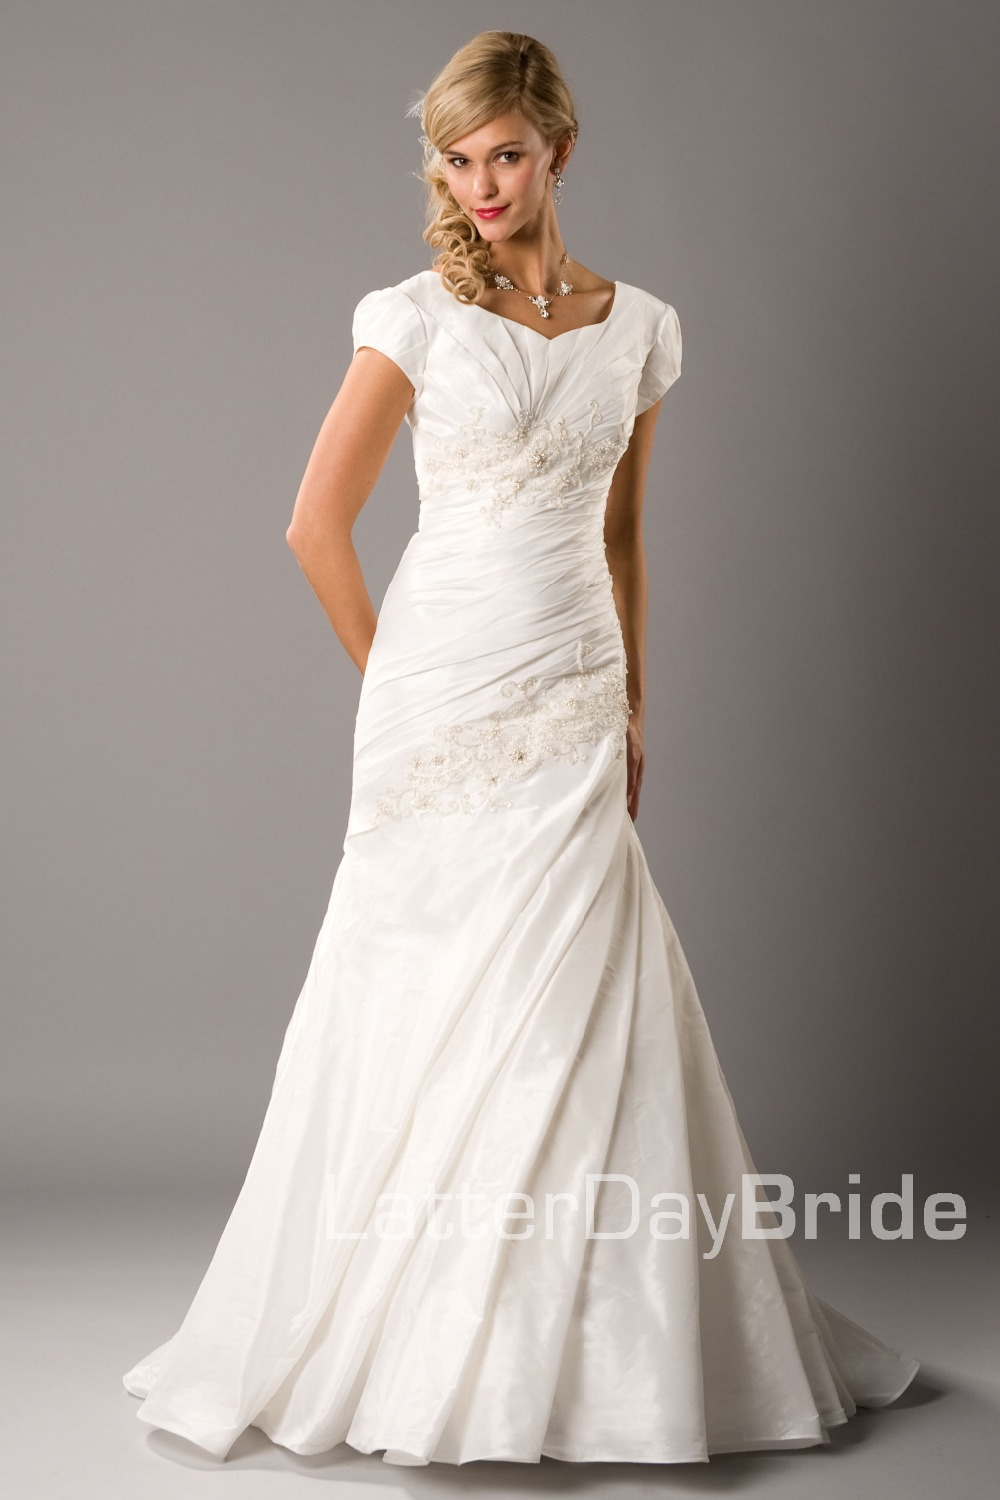 2019 New Inexpensive Modest  Ivory A-Line Long With Train Cap Sleeves Ruched Taffeta Women Church Wedding Dress With Sleeves